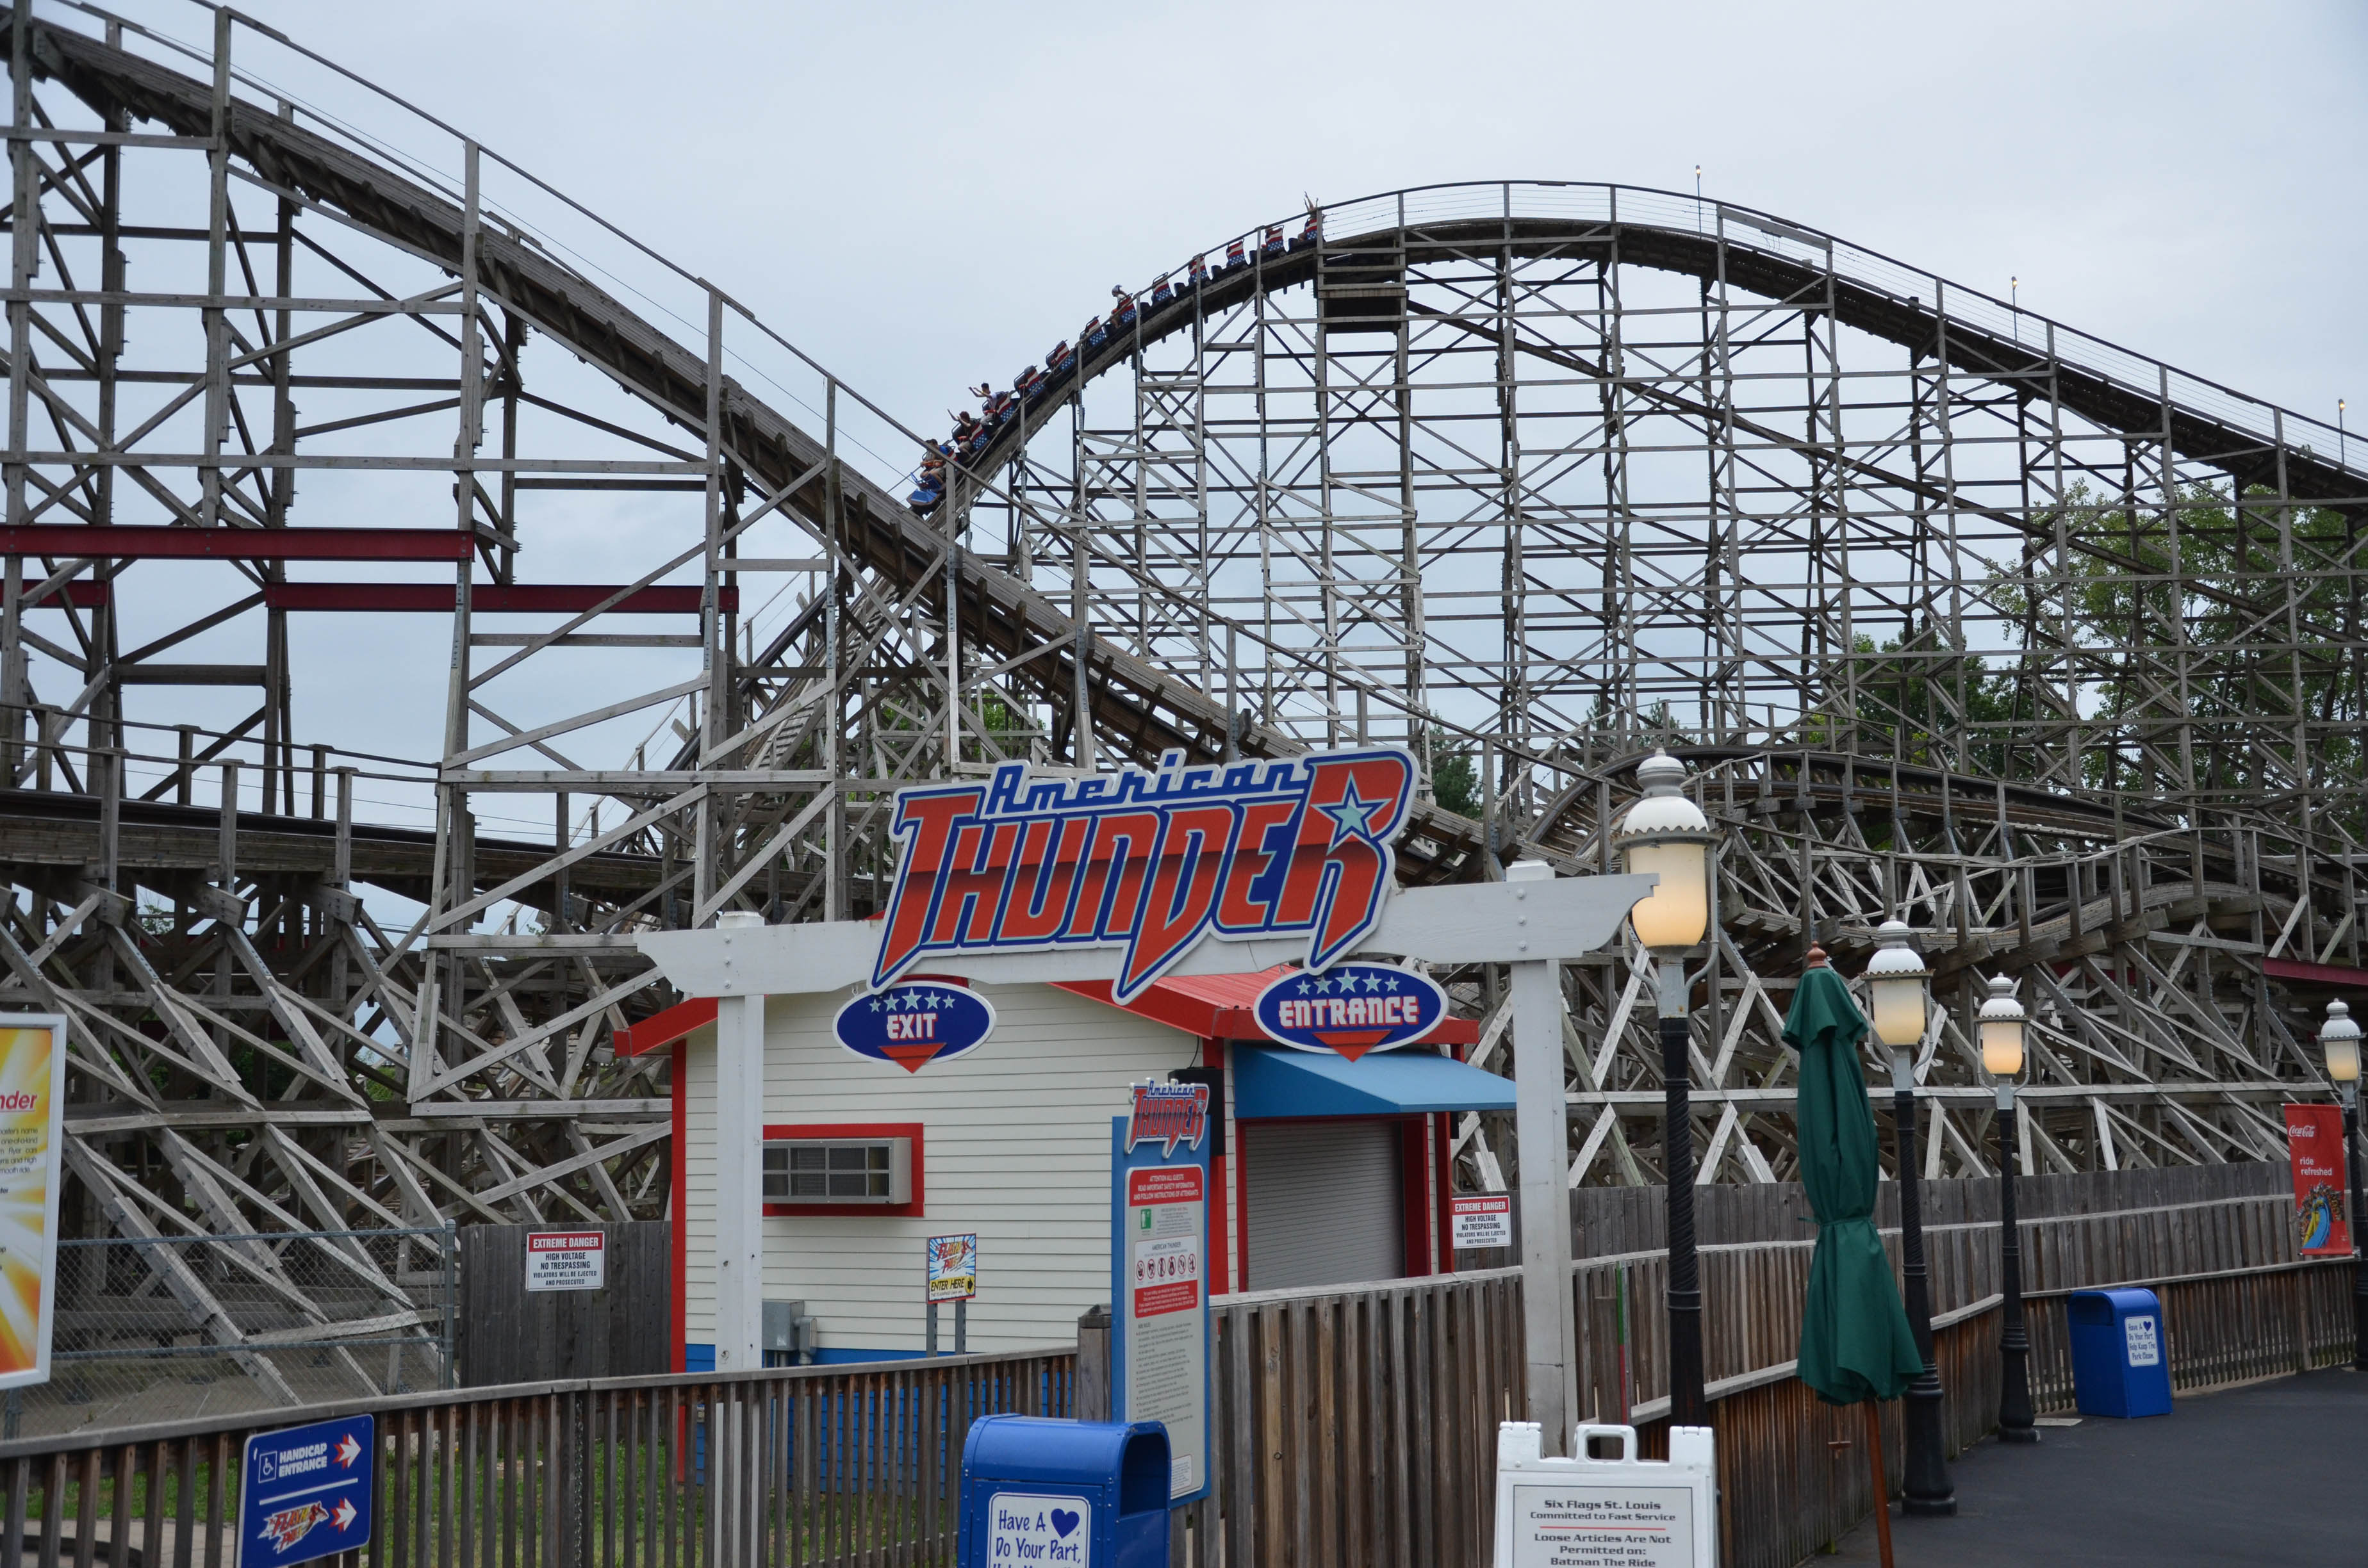 Six Flags St. Louis - American Thunder